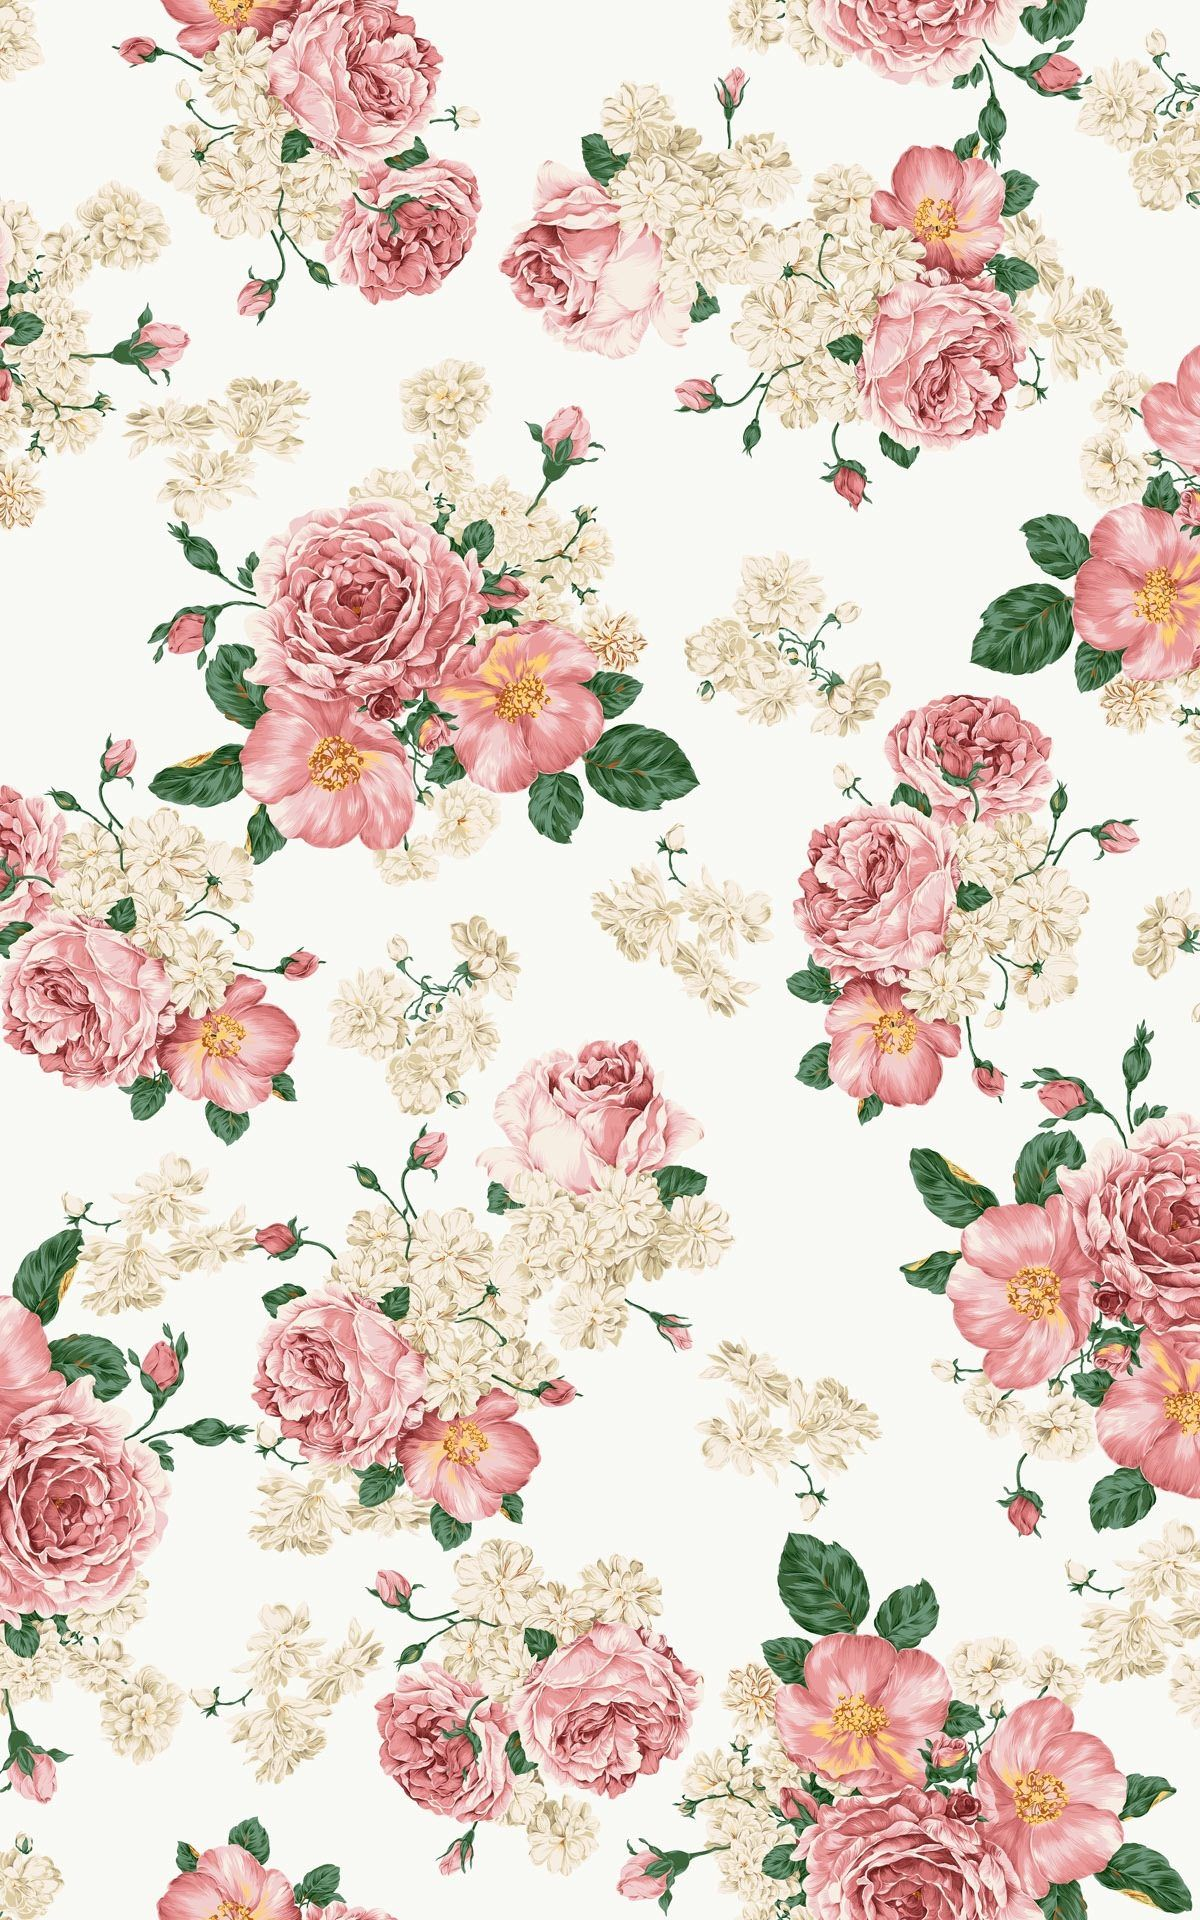 Iphone Se Flower Wallpaper Vintage Flower Background Iphone